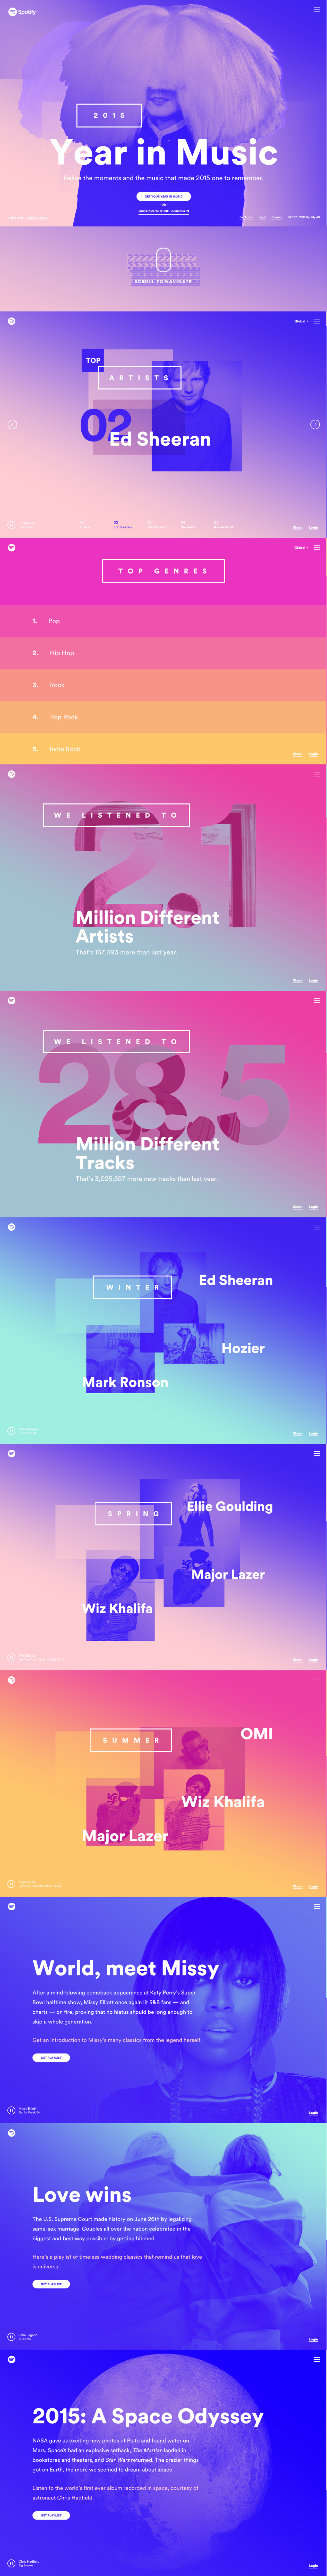 Spotify yearinmusic review microsite 2016 Spotify year